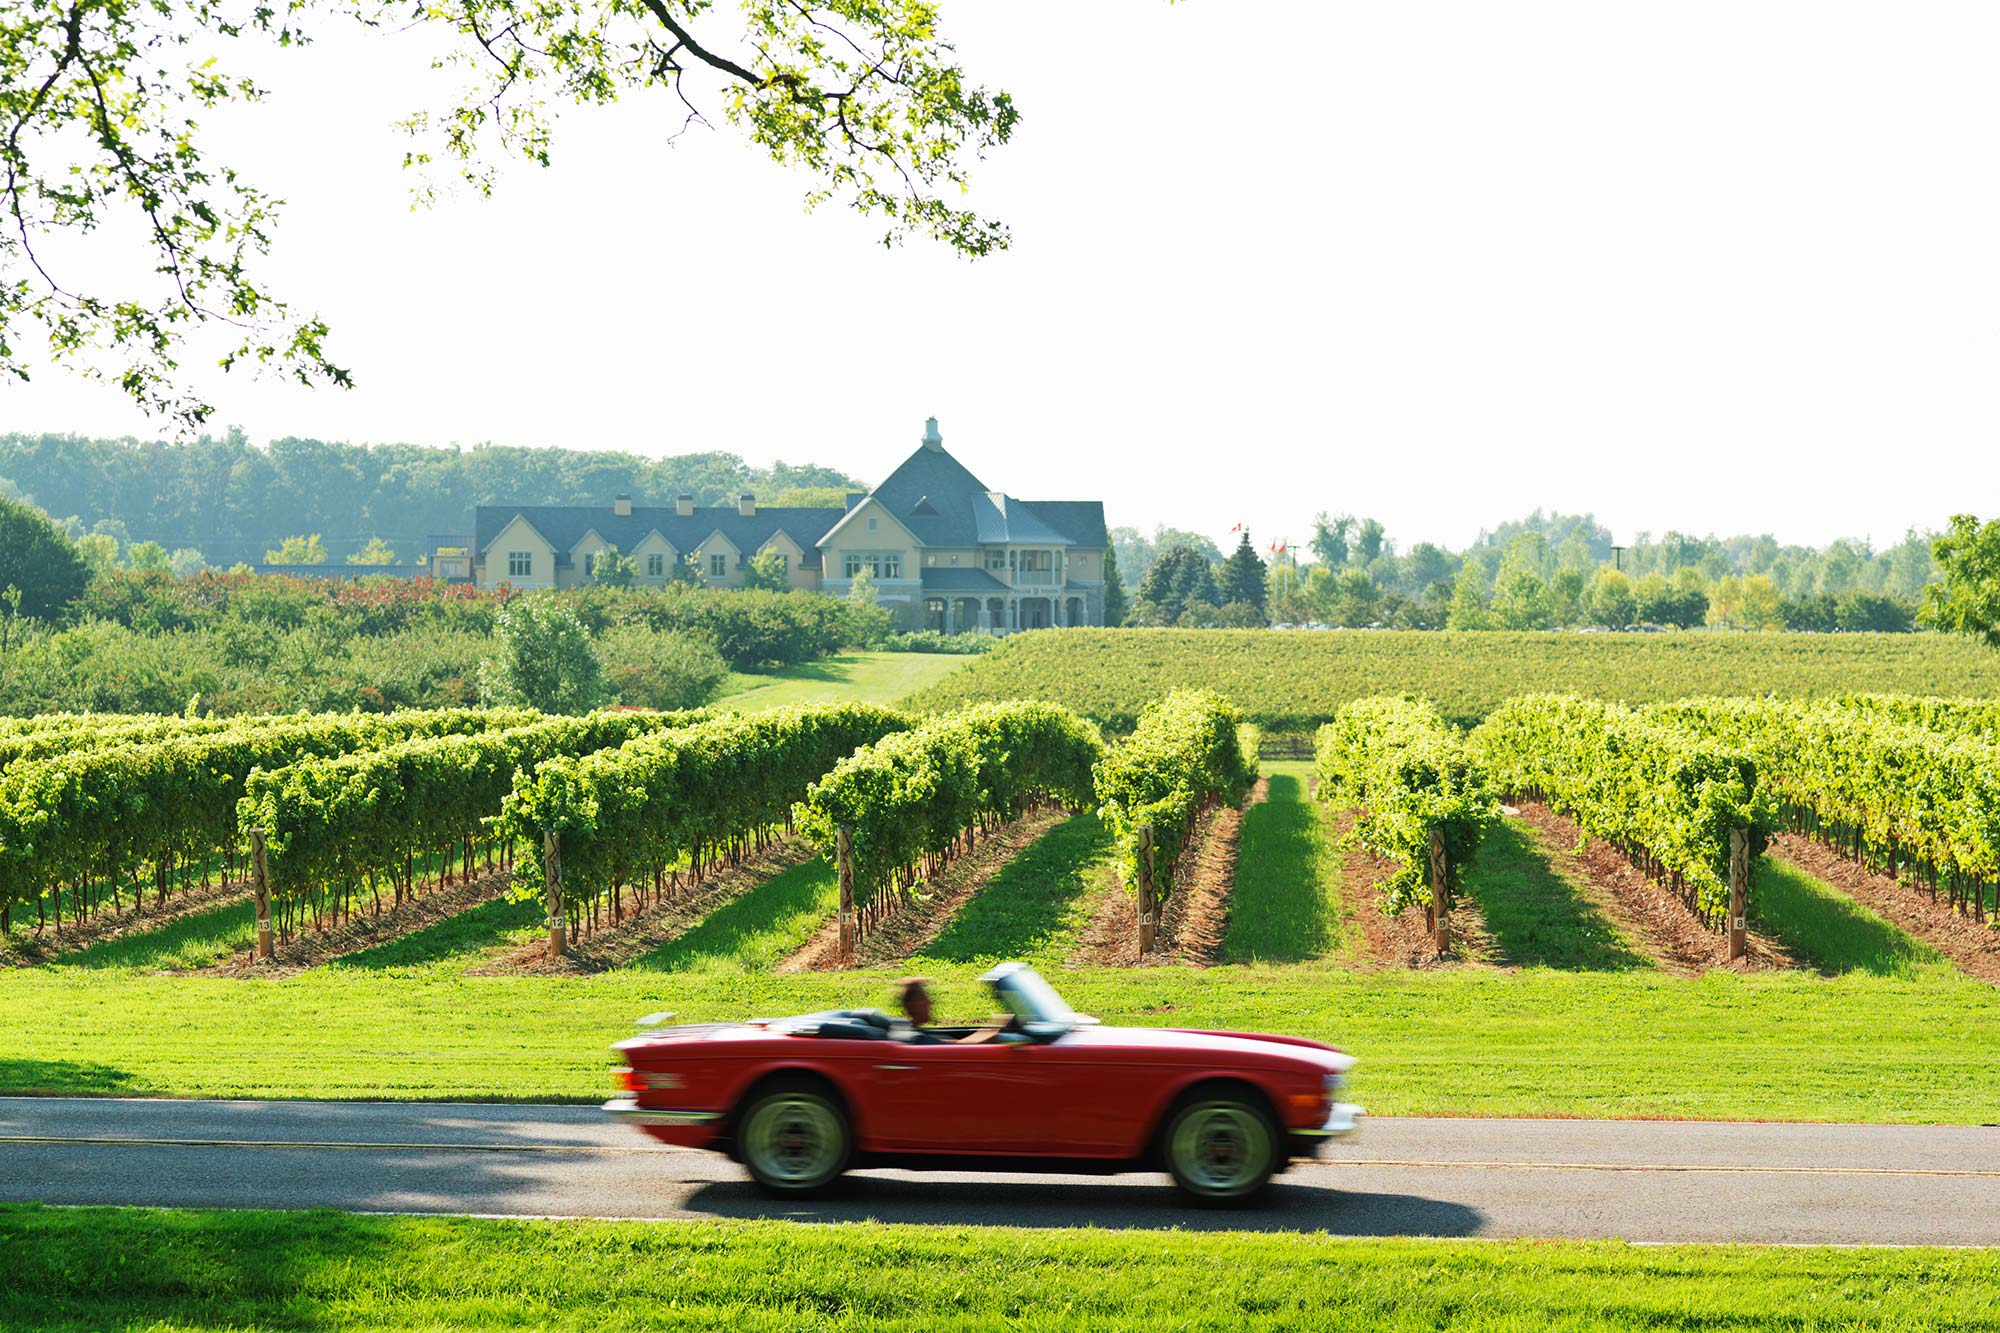 red sports car on road passing vineyards and winery in the Niagara Region